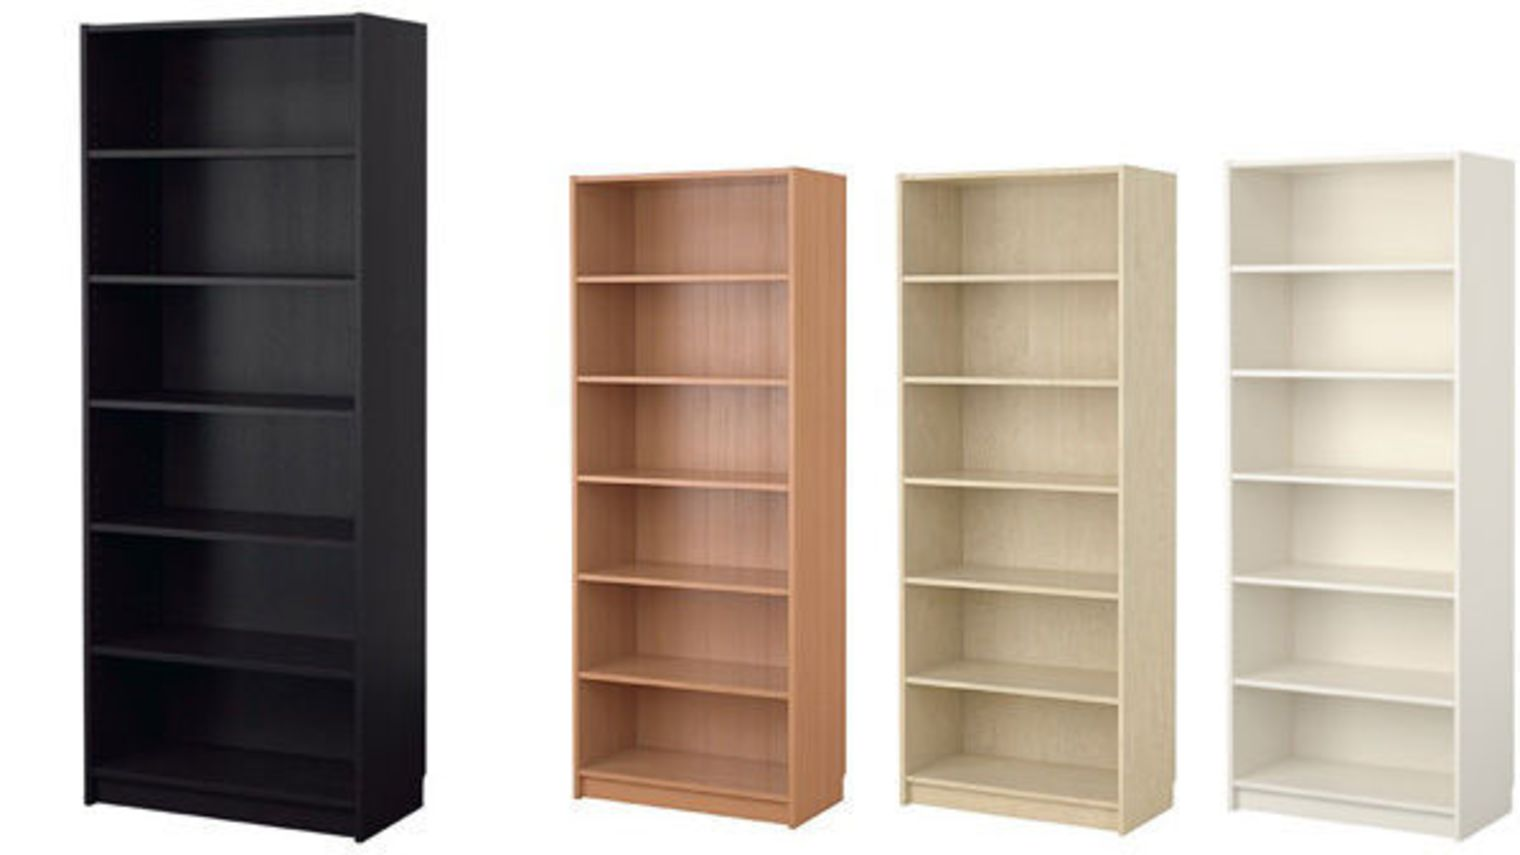 biblioth que achat meuble 5 id es de d coration int rieure french decor. Black Bedroom Furniture Sets. Home Design Ideas